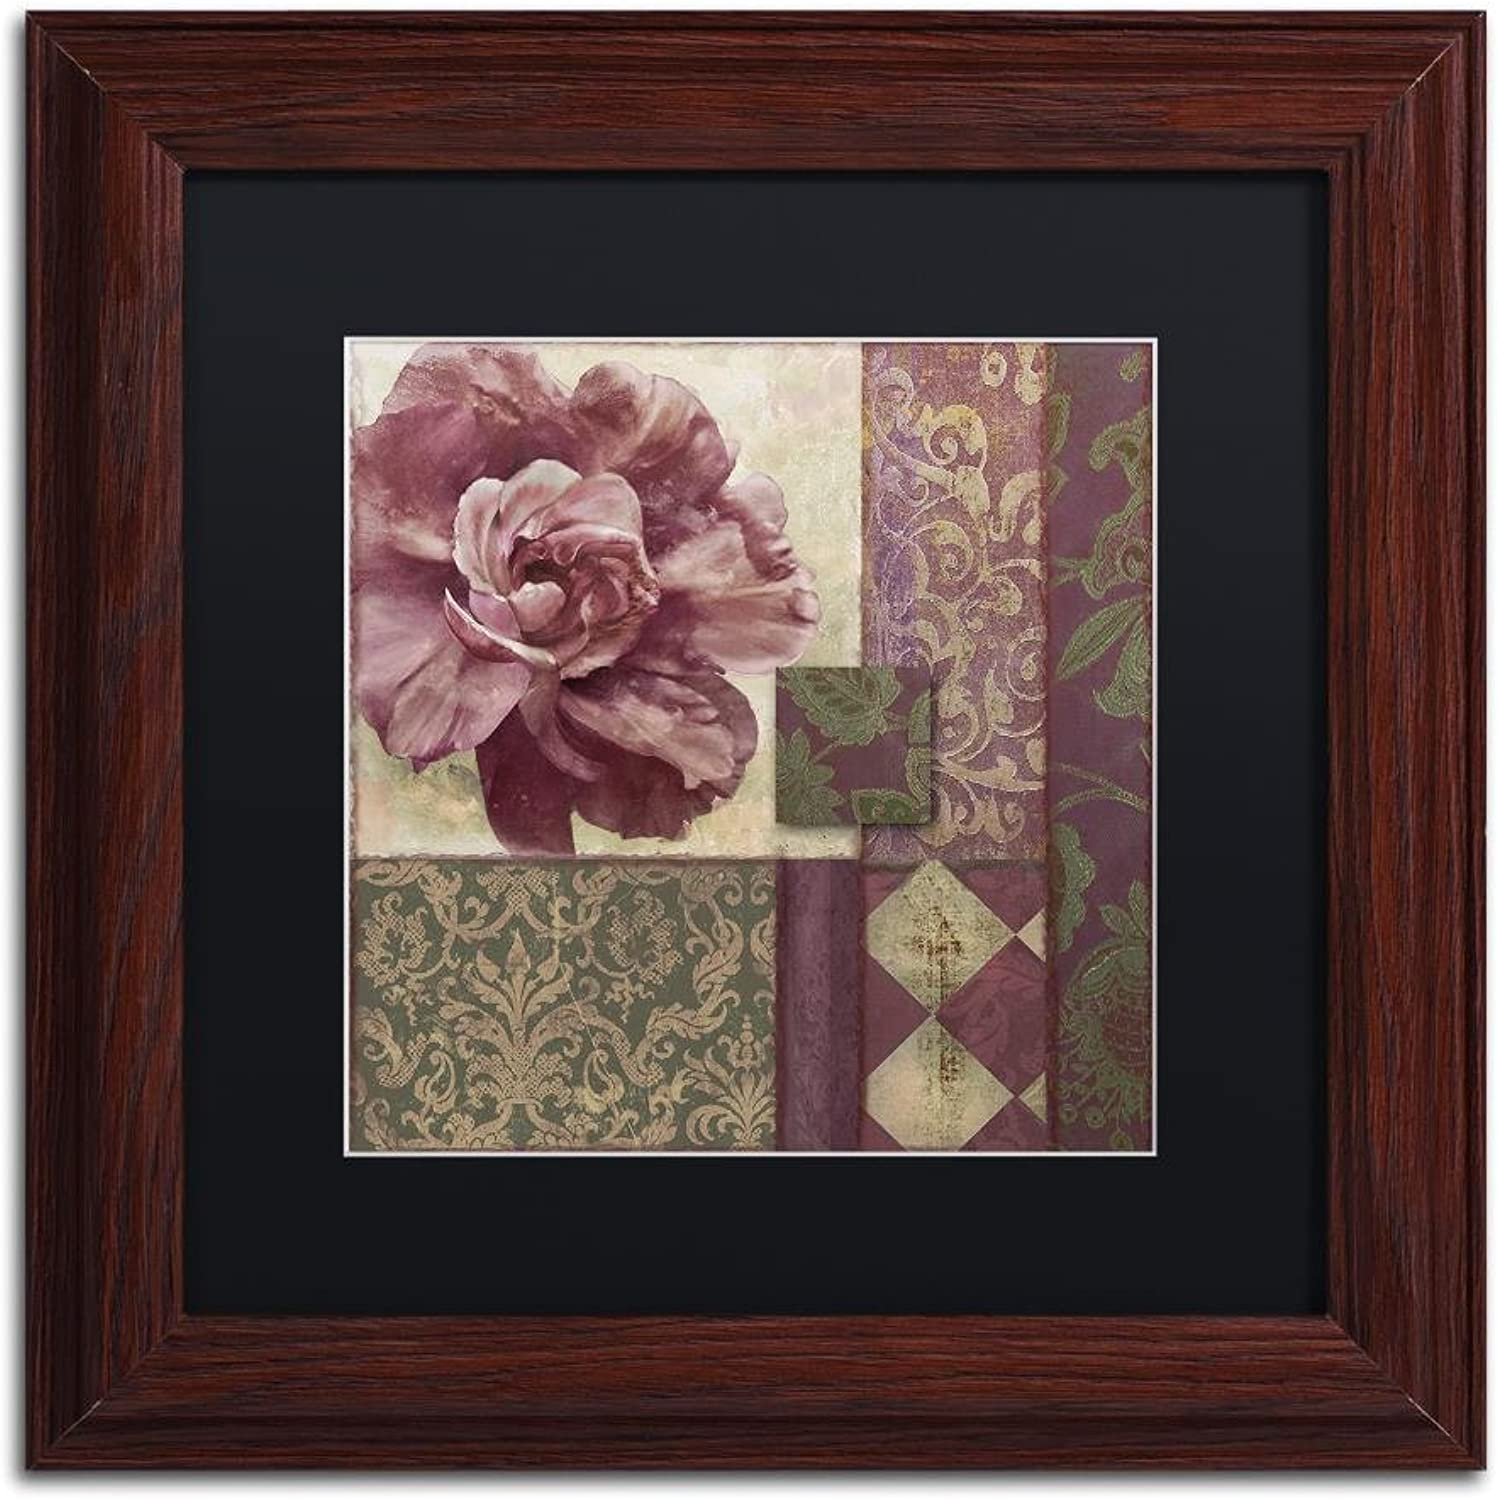 Trademark Fine Art Patch Work Brocade I by color Bakery, Black Matte, Wood Frame 11x11, Wall Art